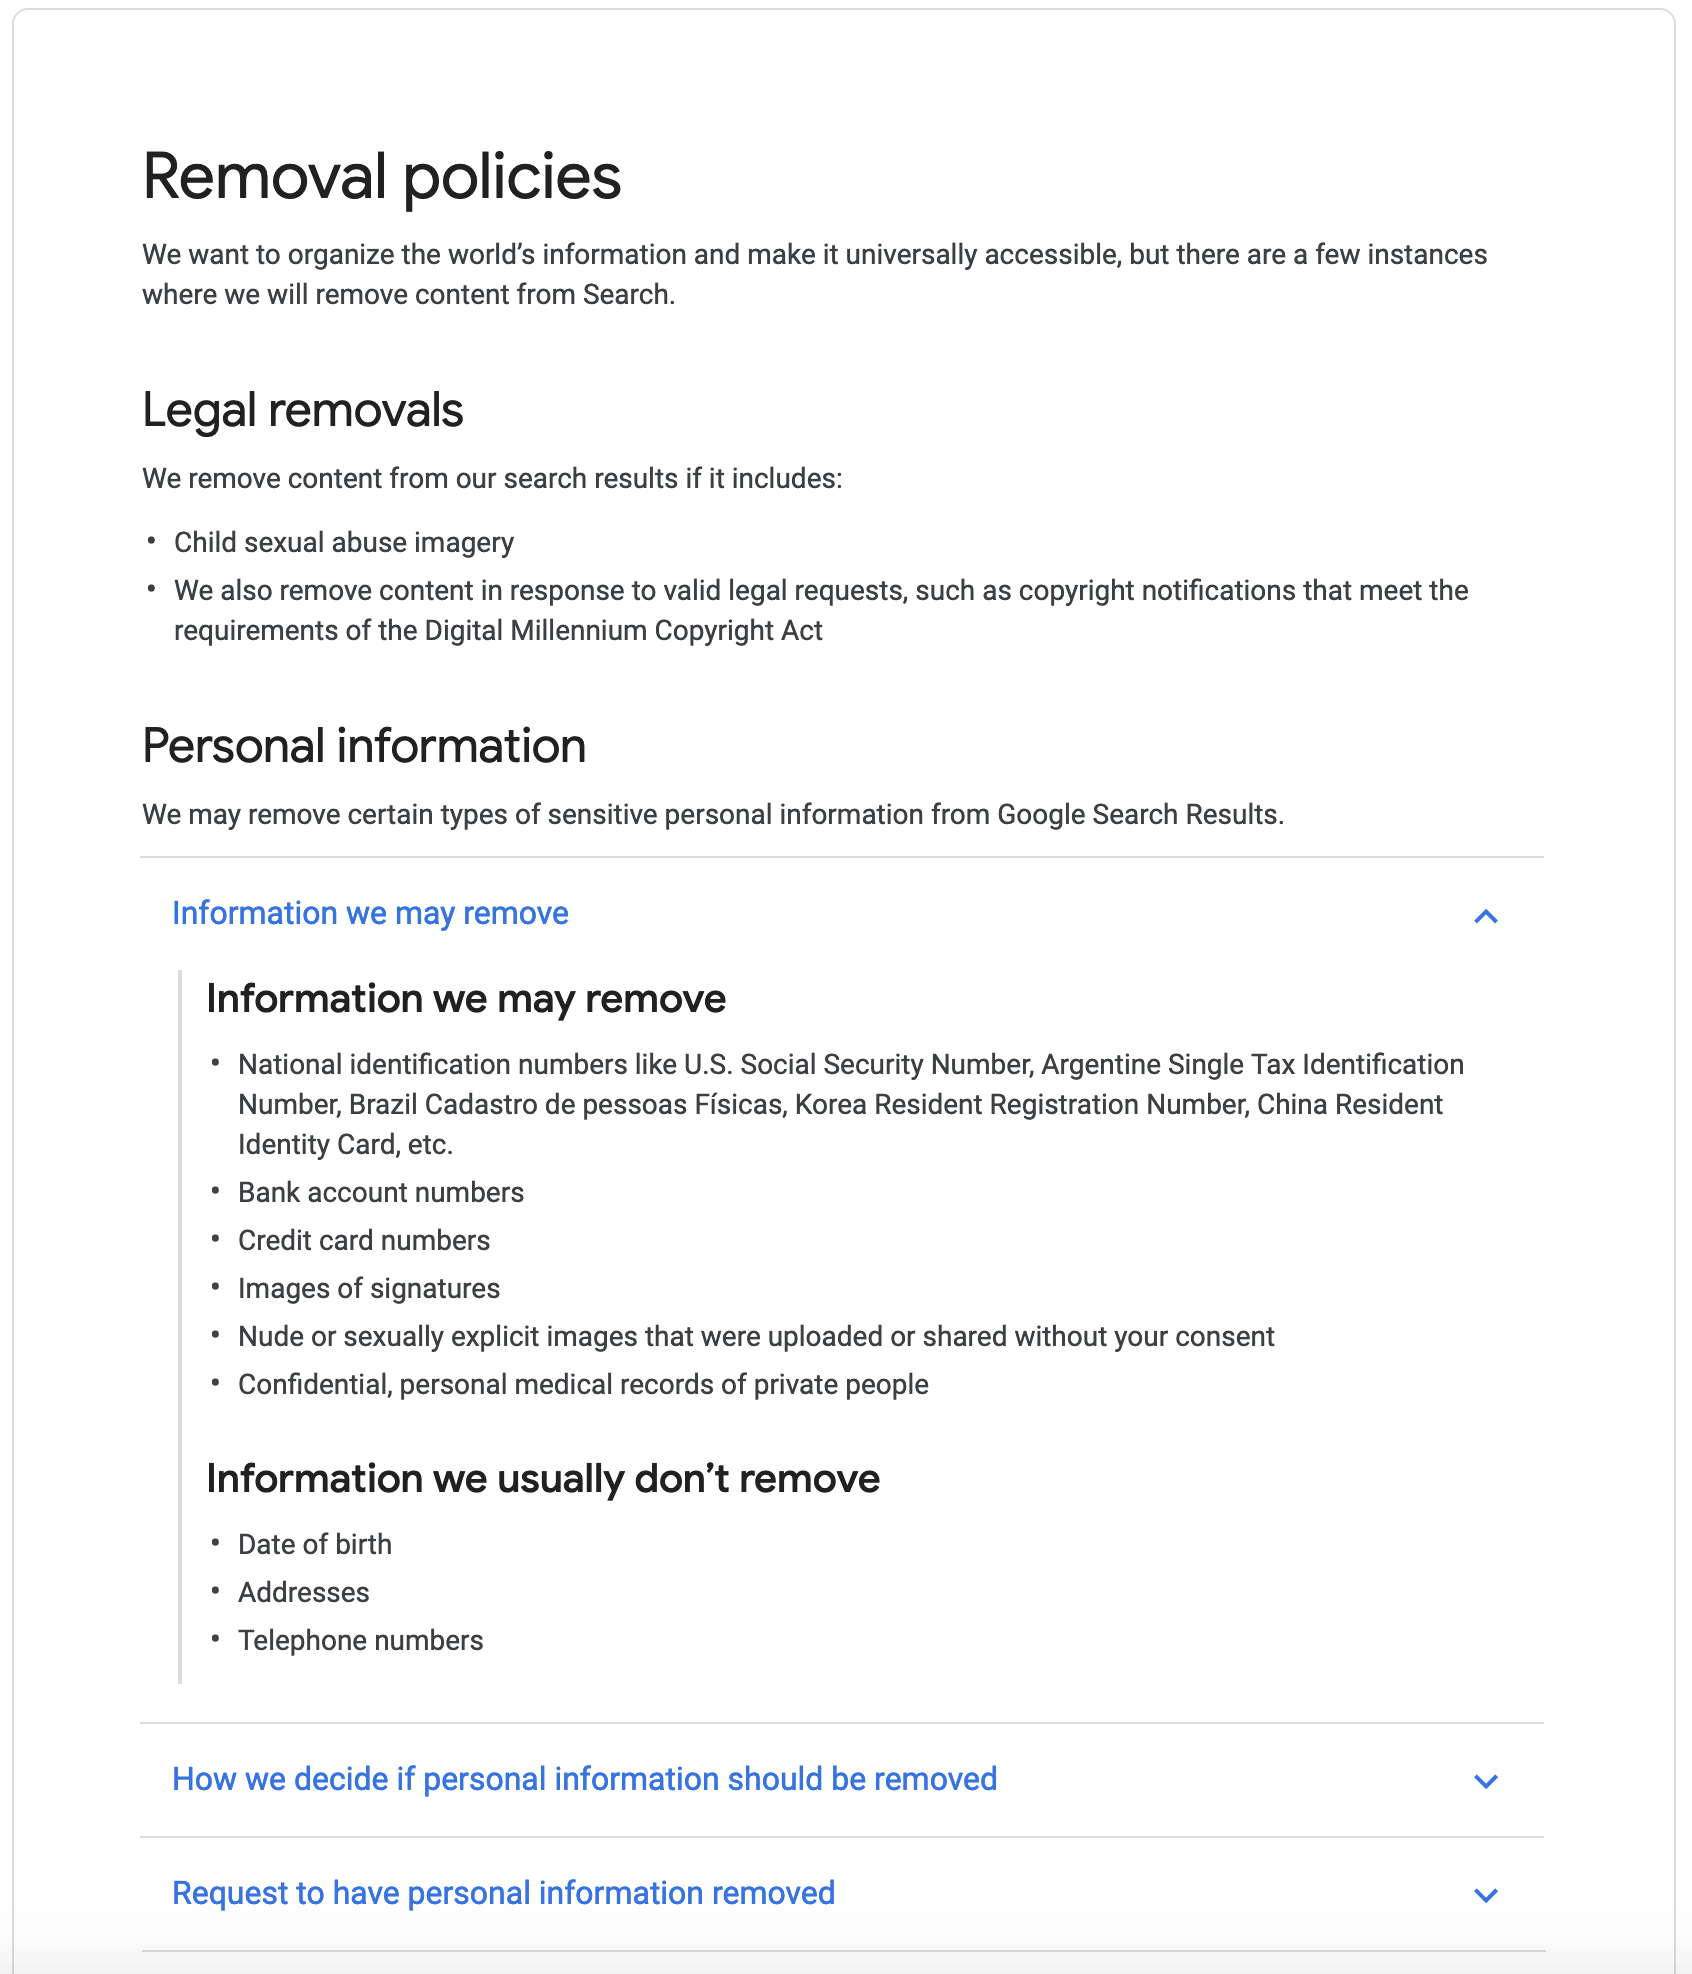 Information Google may remove